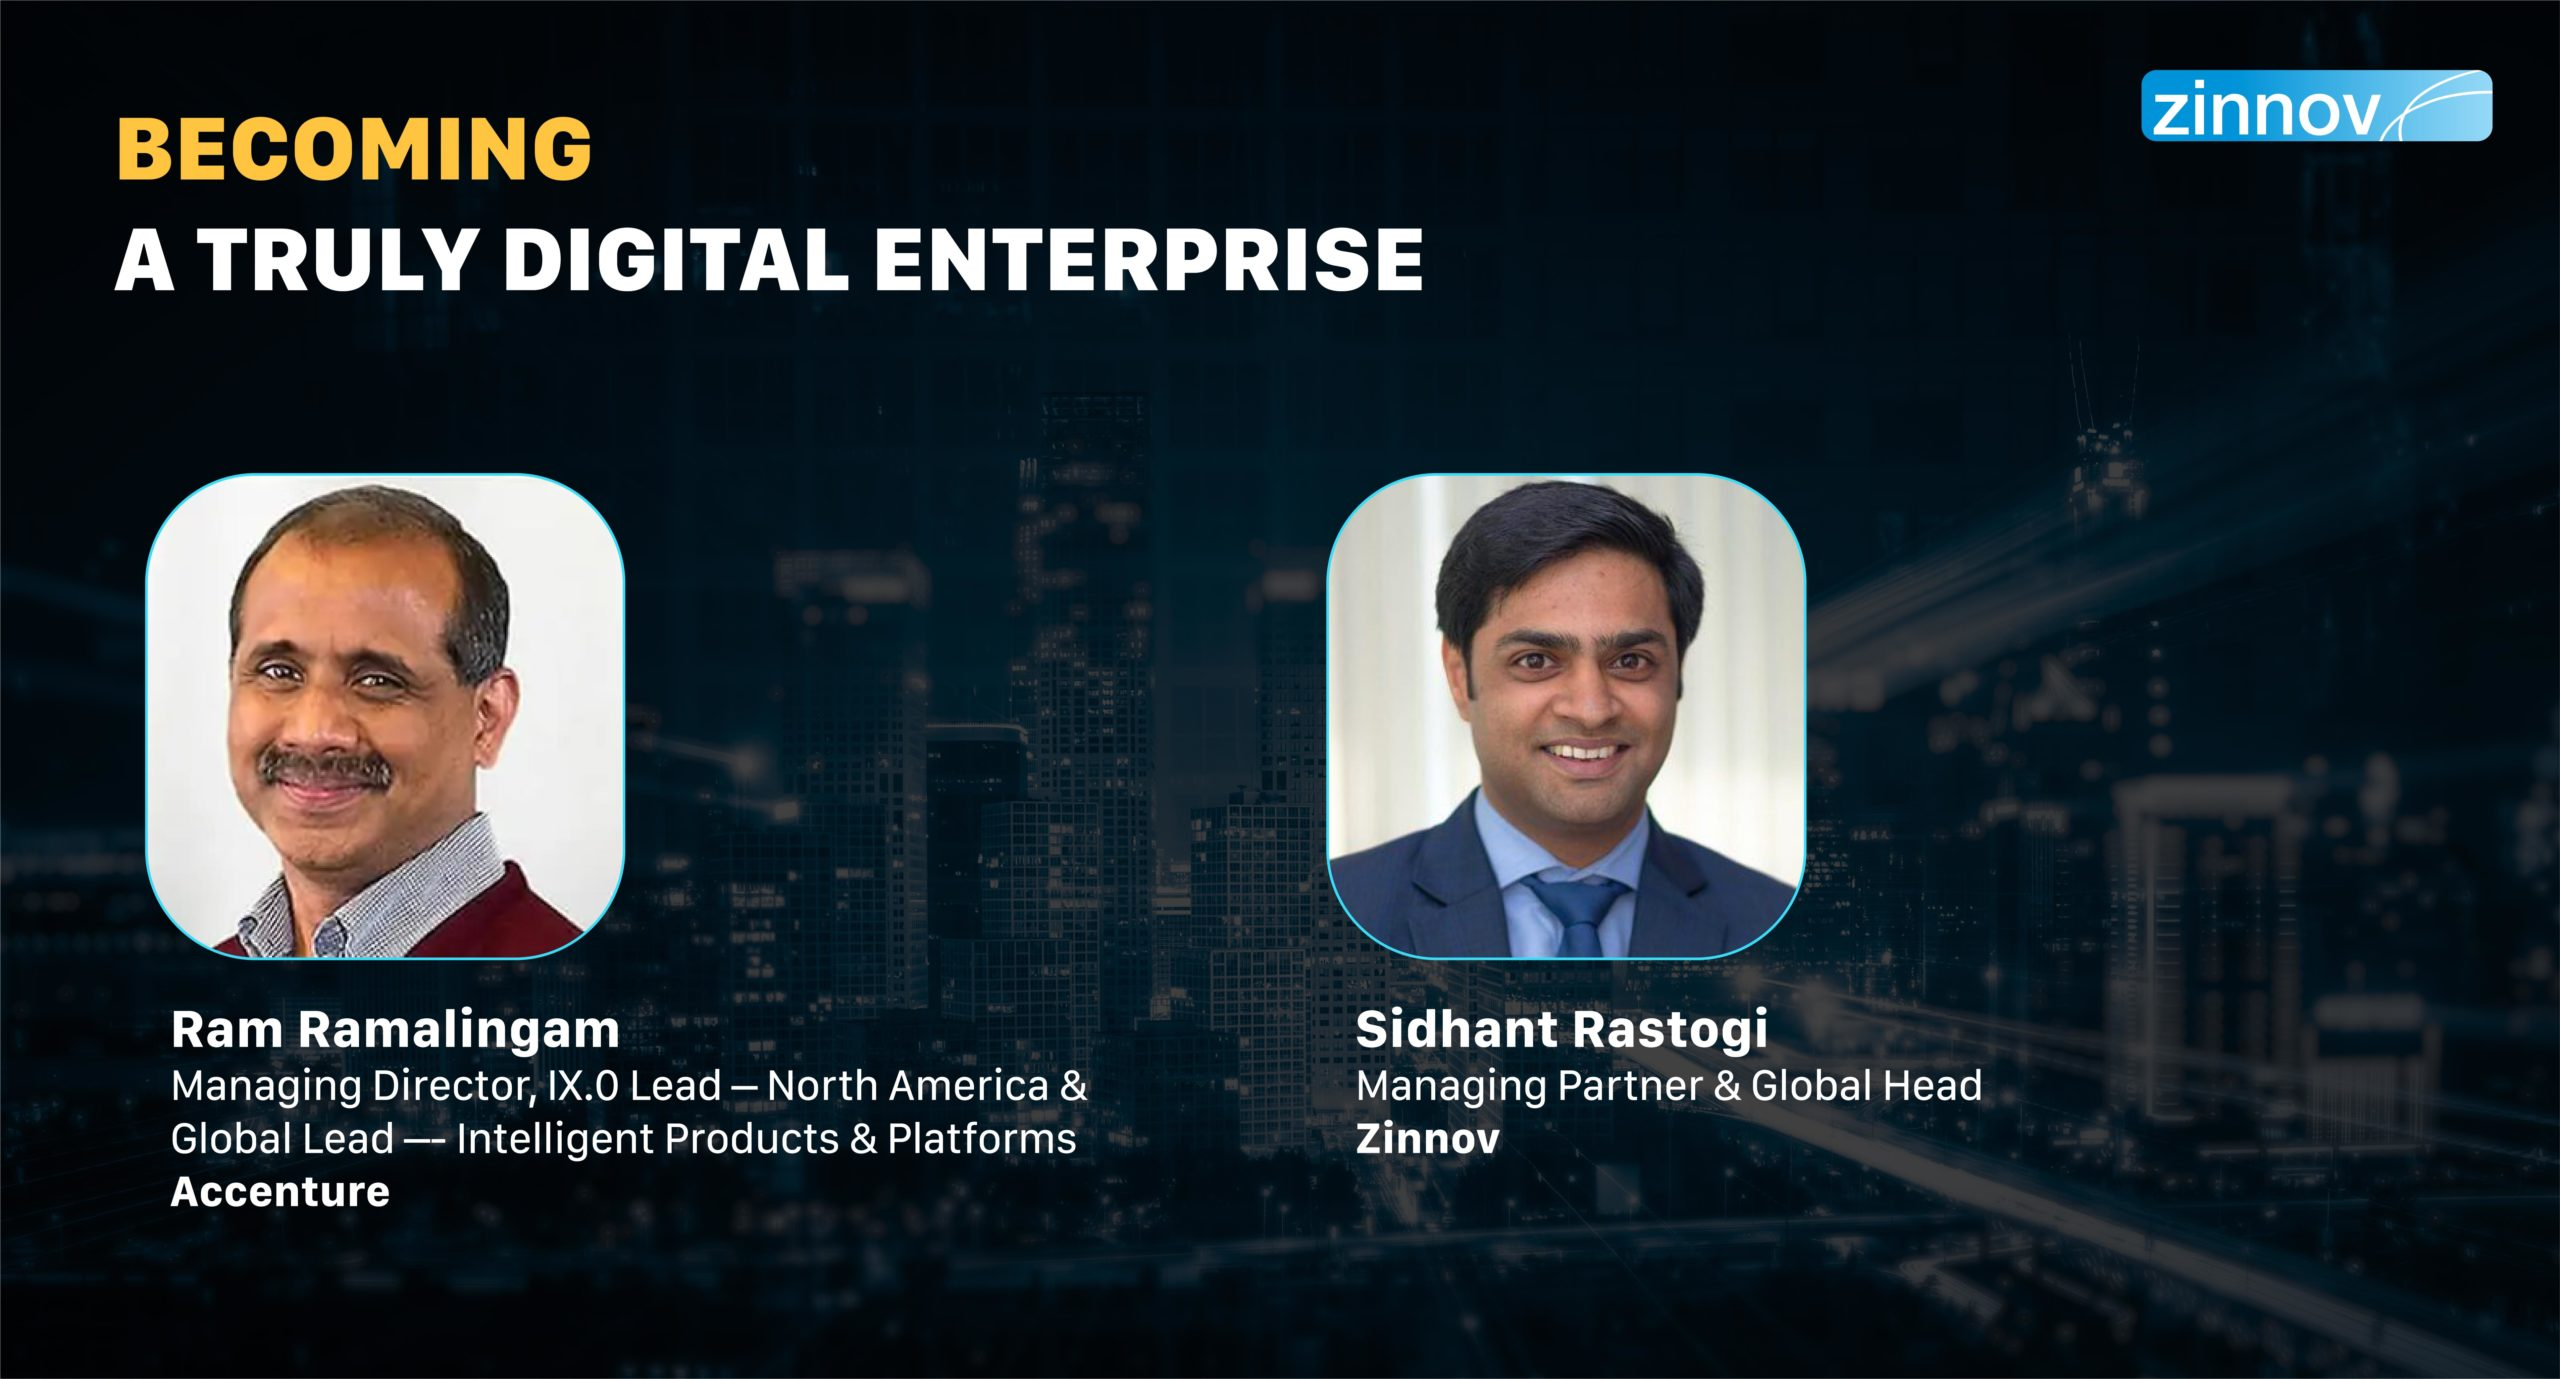 Becoming a digital enterprise